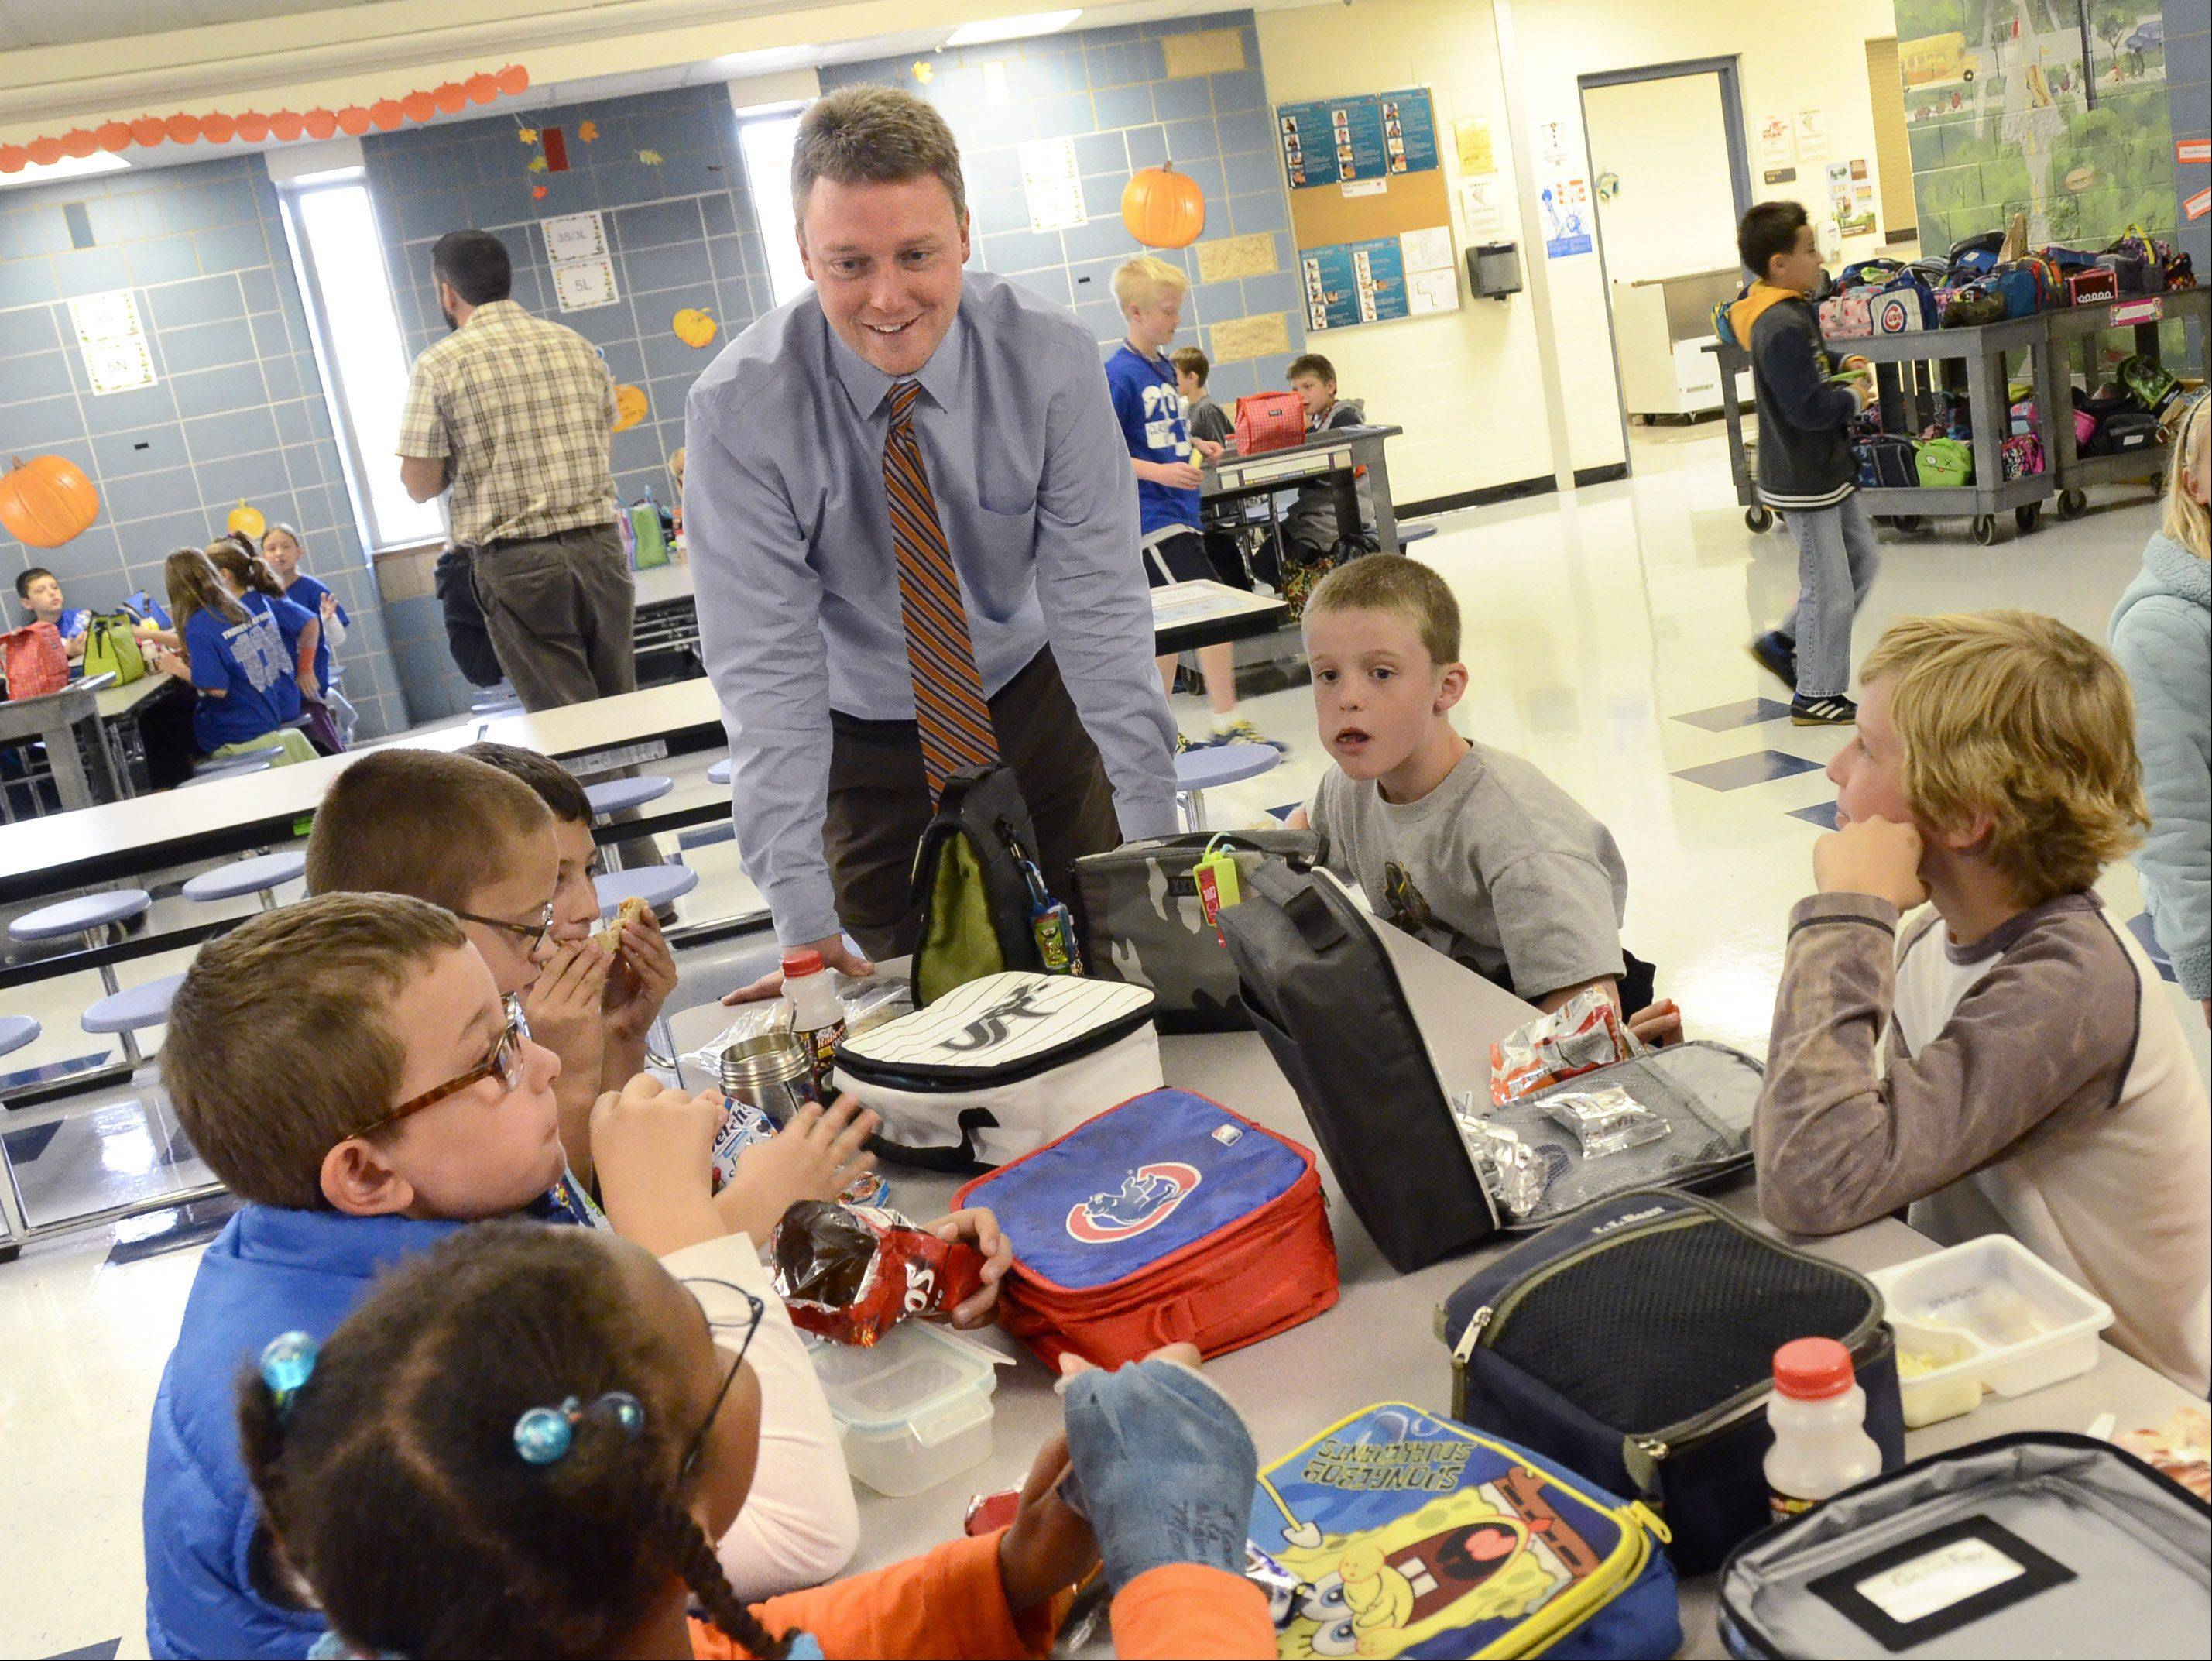 Dan Ophus, new principal at Fairview Elementary School in Mount Prospect, talks with students at lunch as part of his daily routine.